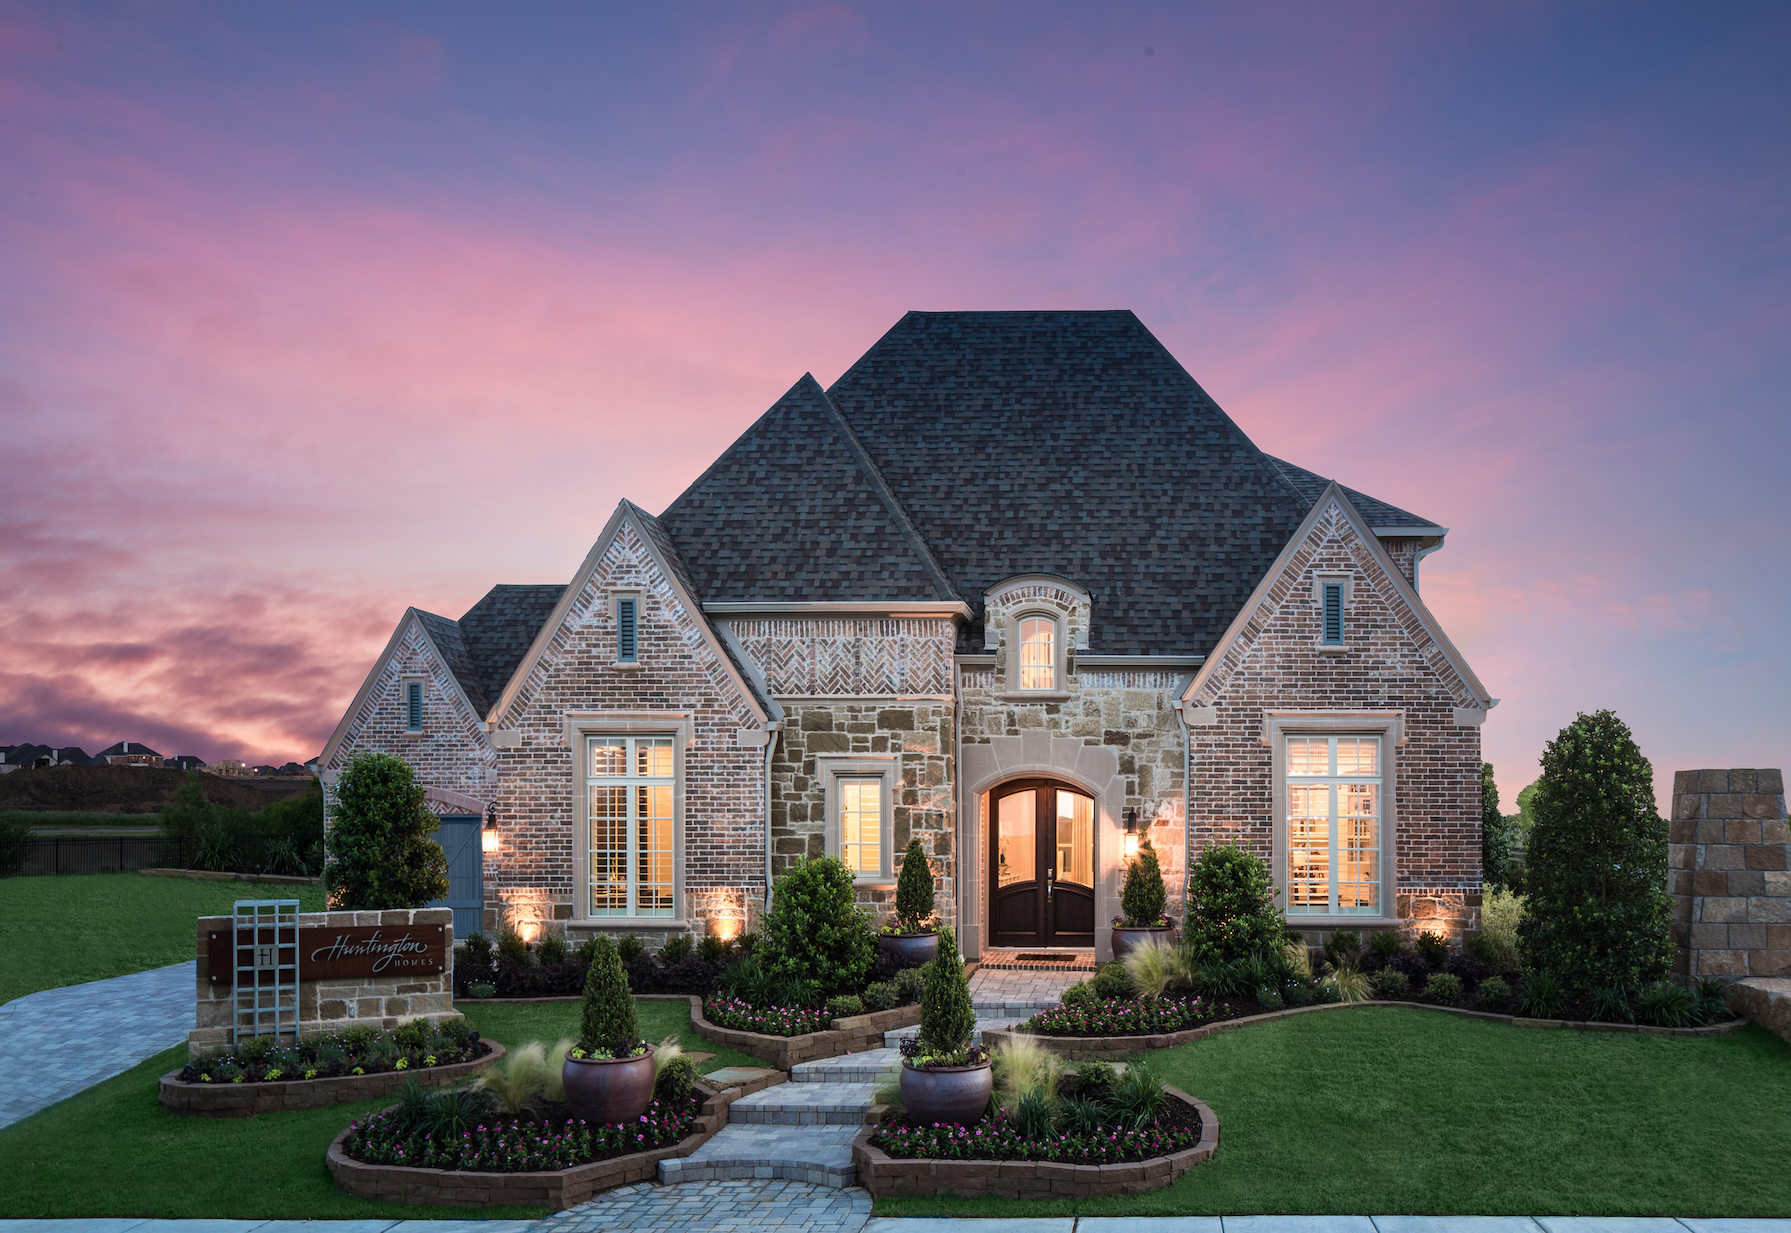 Exterior Homes With Stone Exterior Home Design Huntington Homes Front Yard Landscaping Front Yard La House Exterior Huntington Homes Best Home Builders